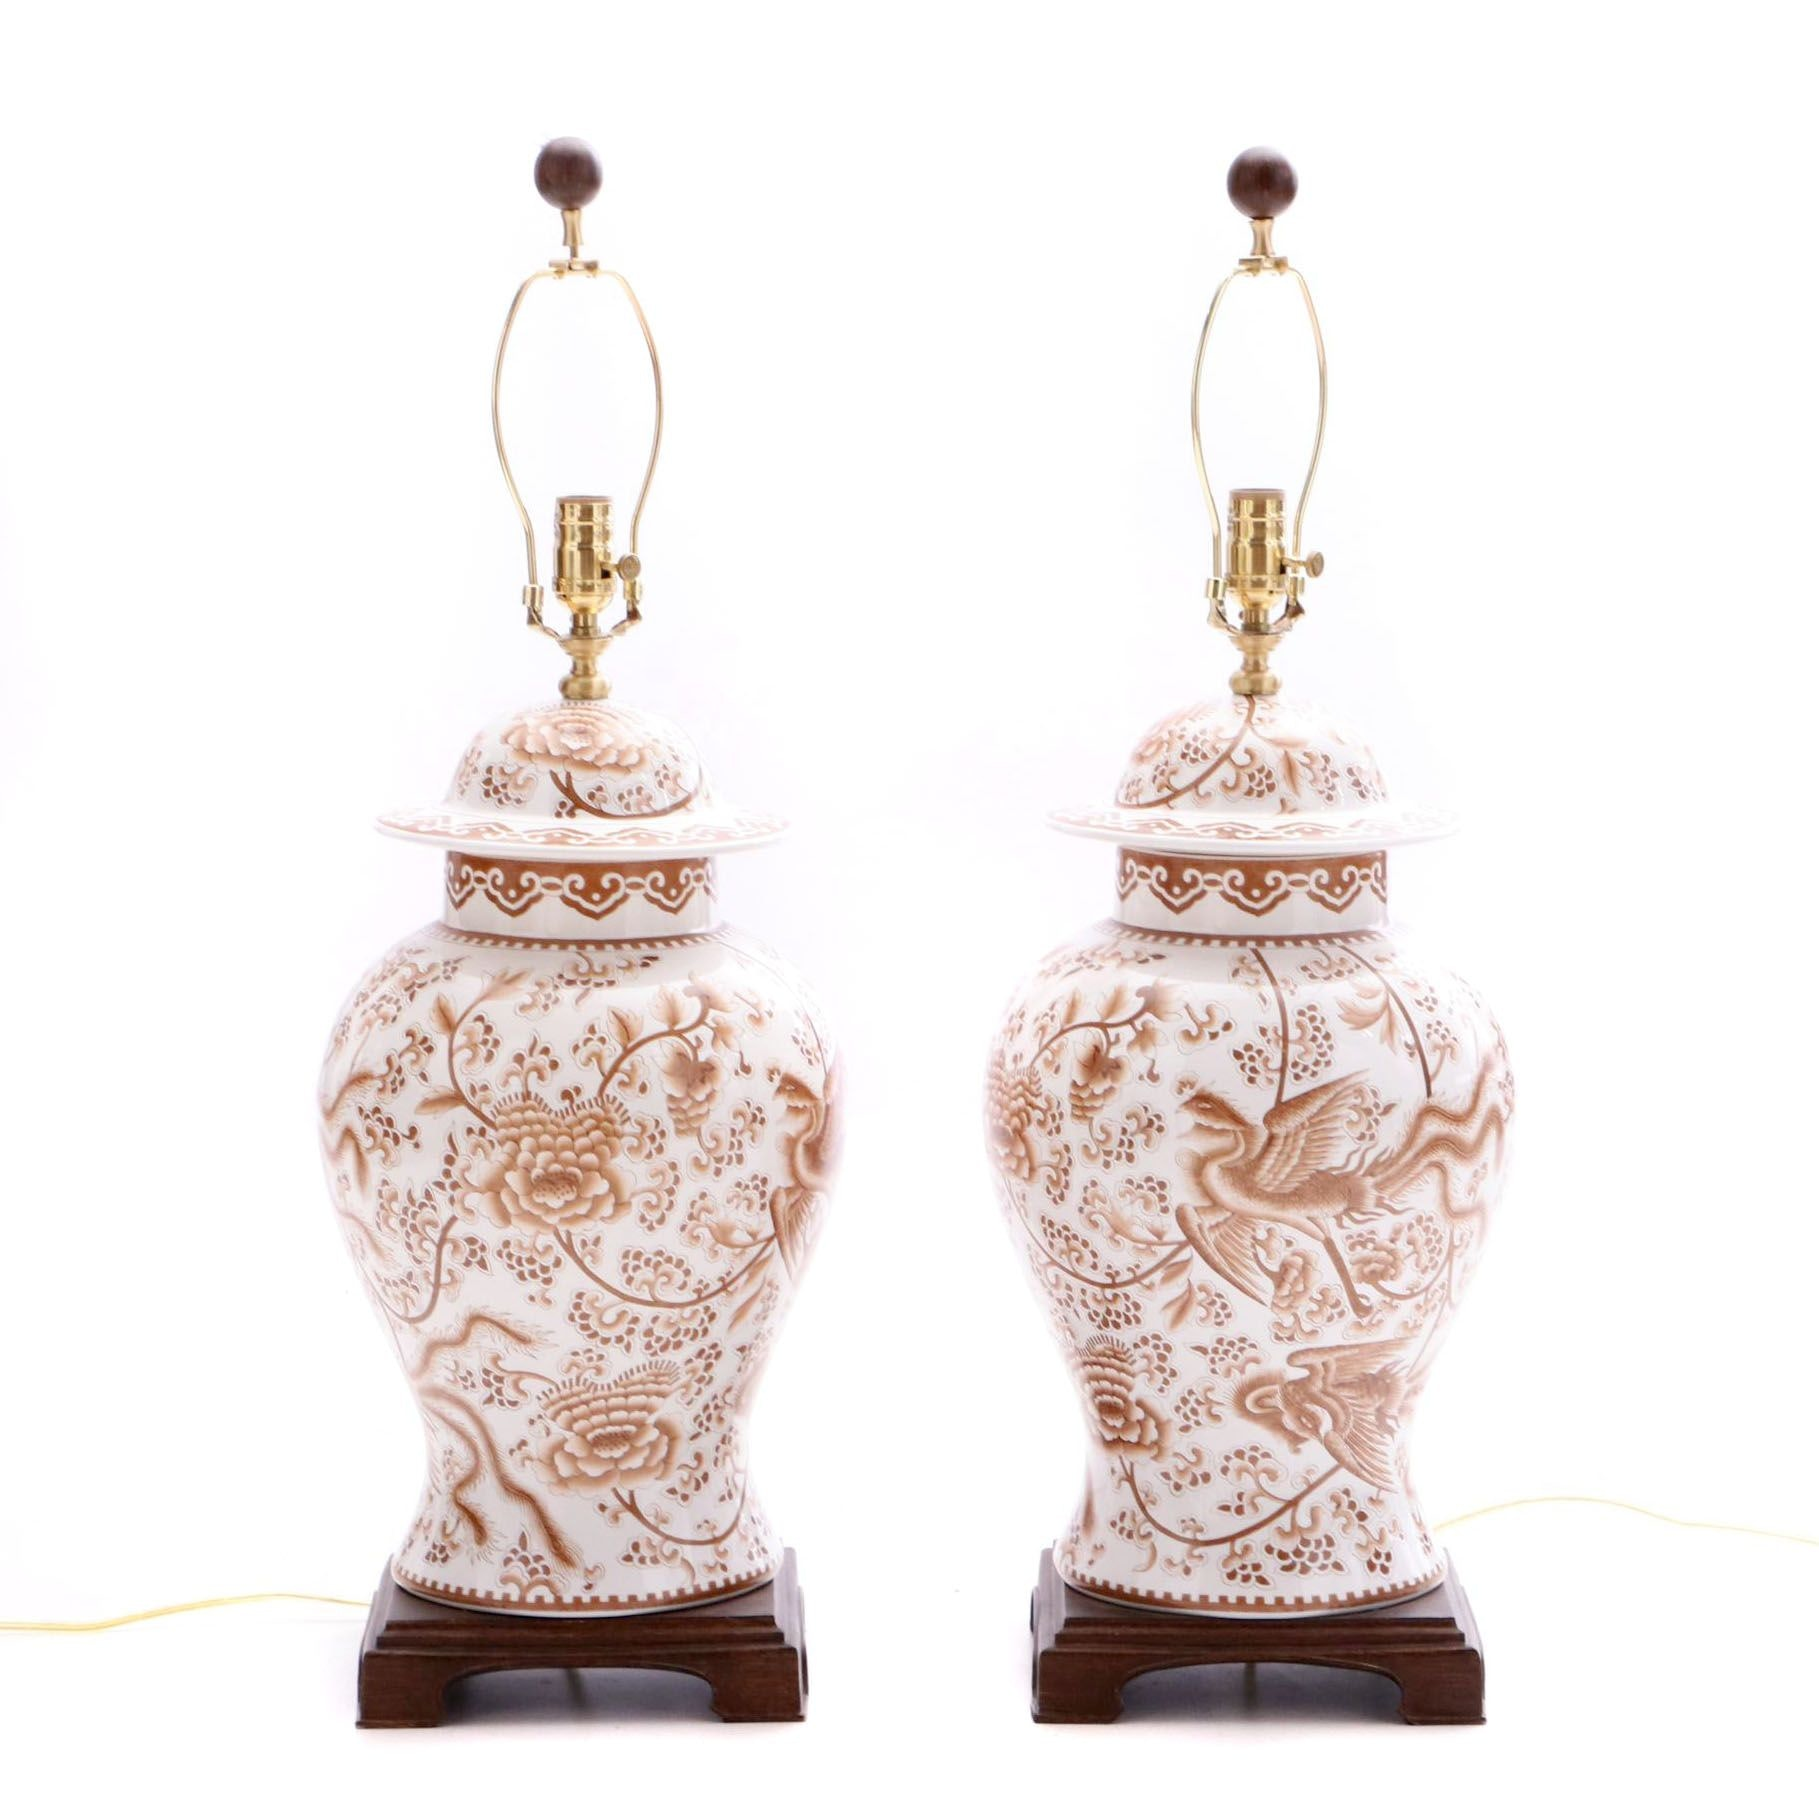 Two Contemporary Asian Style Table Lamps